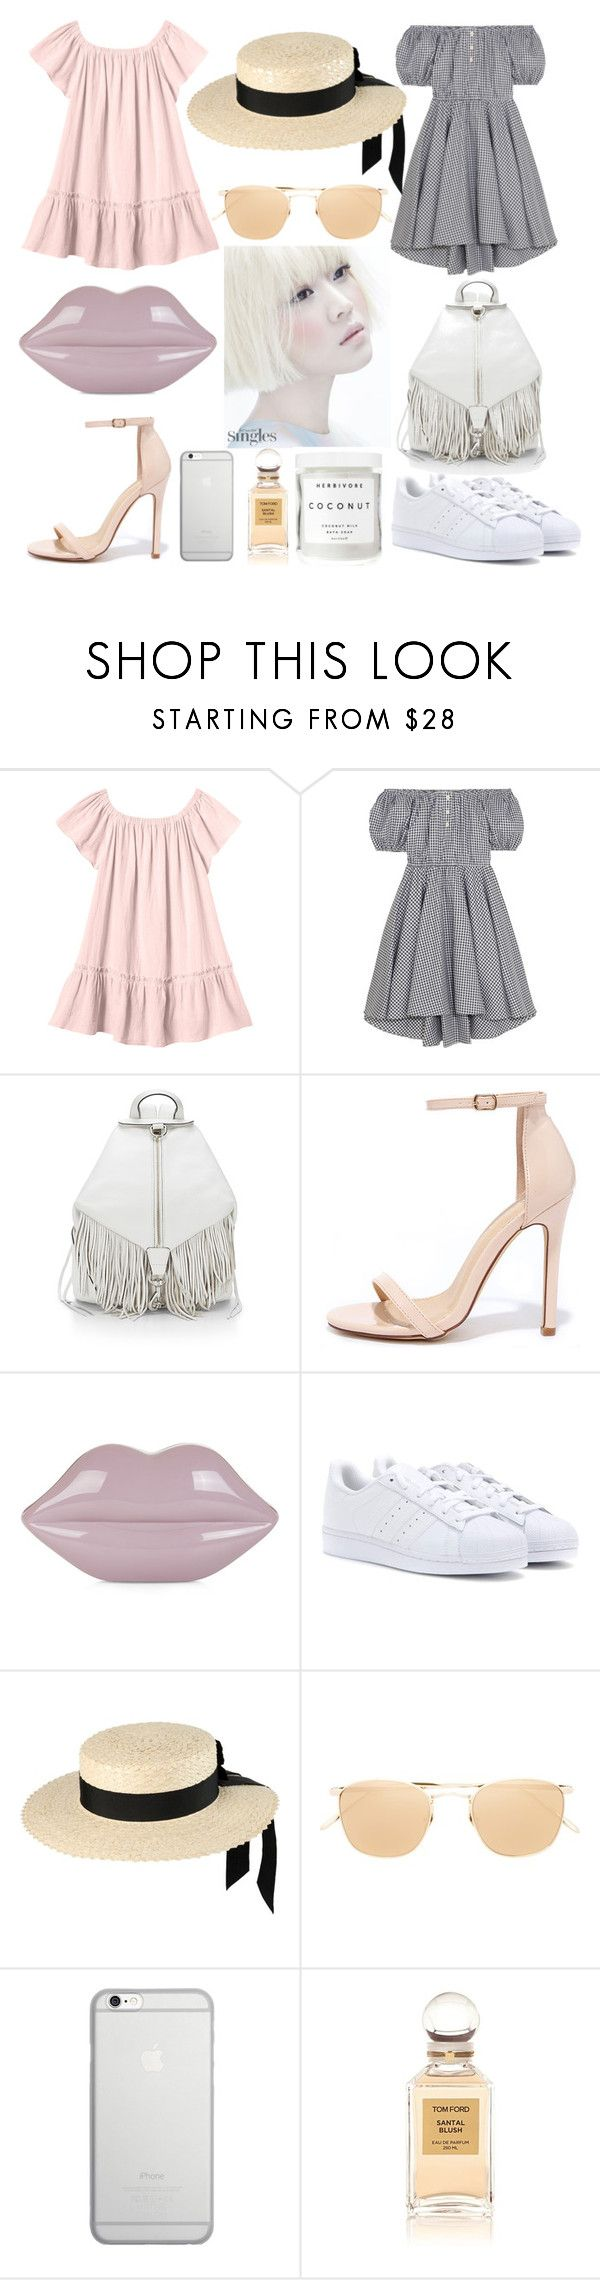 """Spring\summer 2016"" by olga-chistogasheva on Polyvore featuring мода, Rebecca Taylor, Caroline Constas, Rebecca Minkoff, Liliana, Lulu Guinness, adidas, Mich Dulce, Linda Farrow и Native Union"